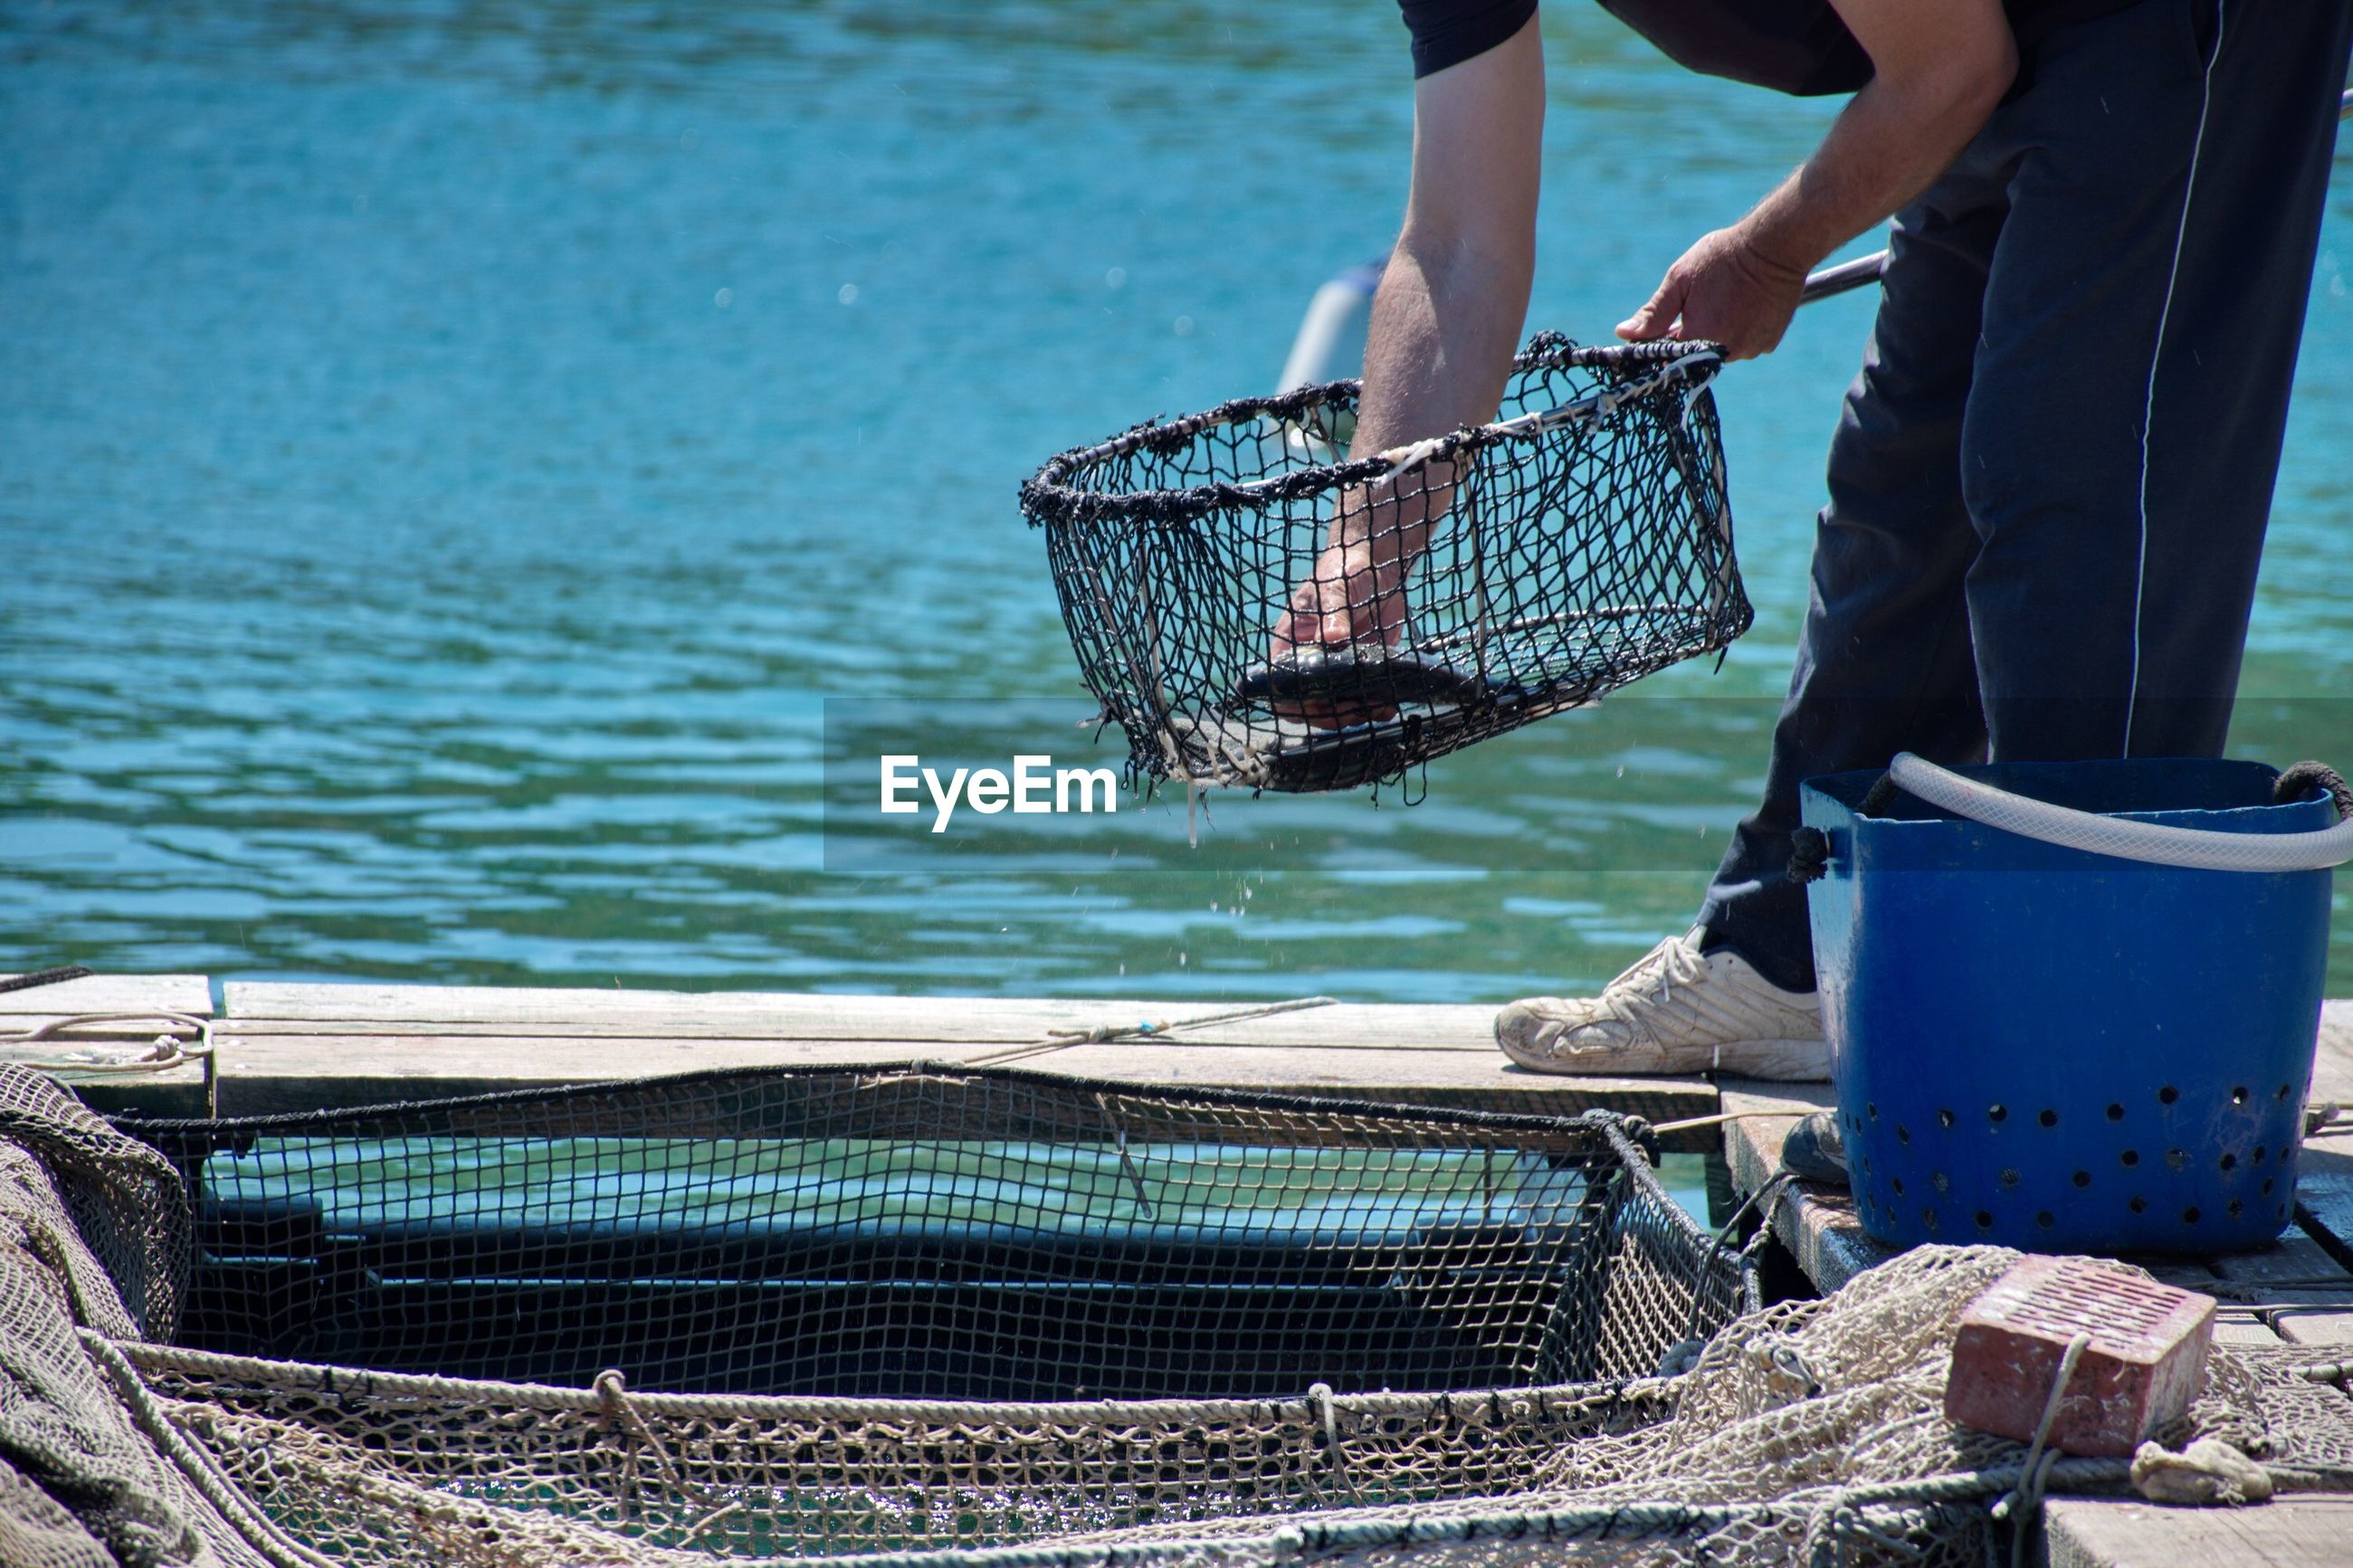 Midsection of man working in fish farm and catching fish